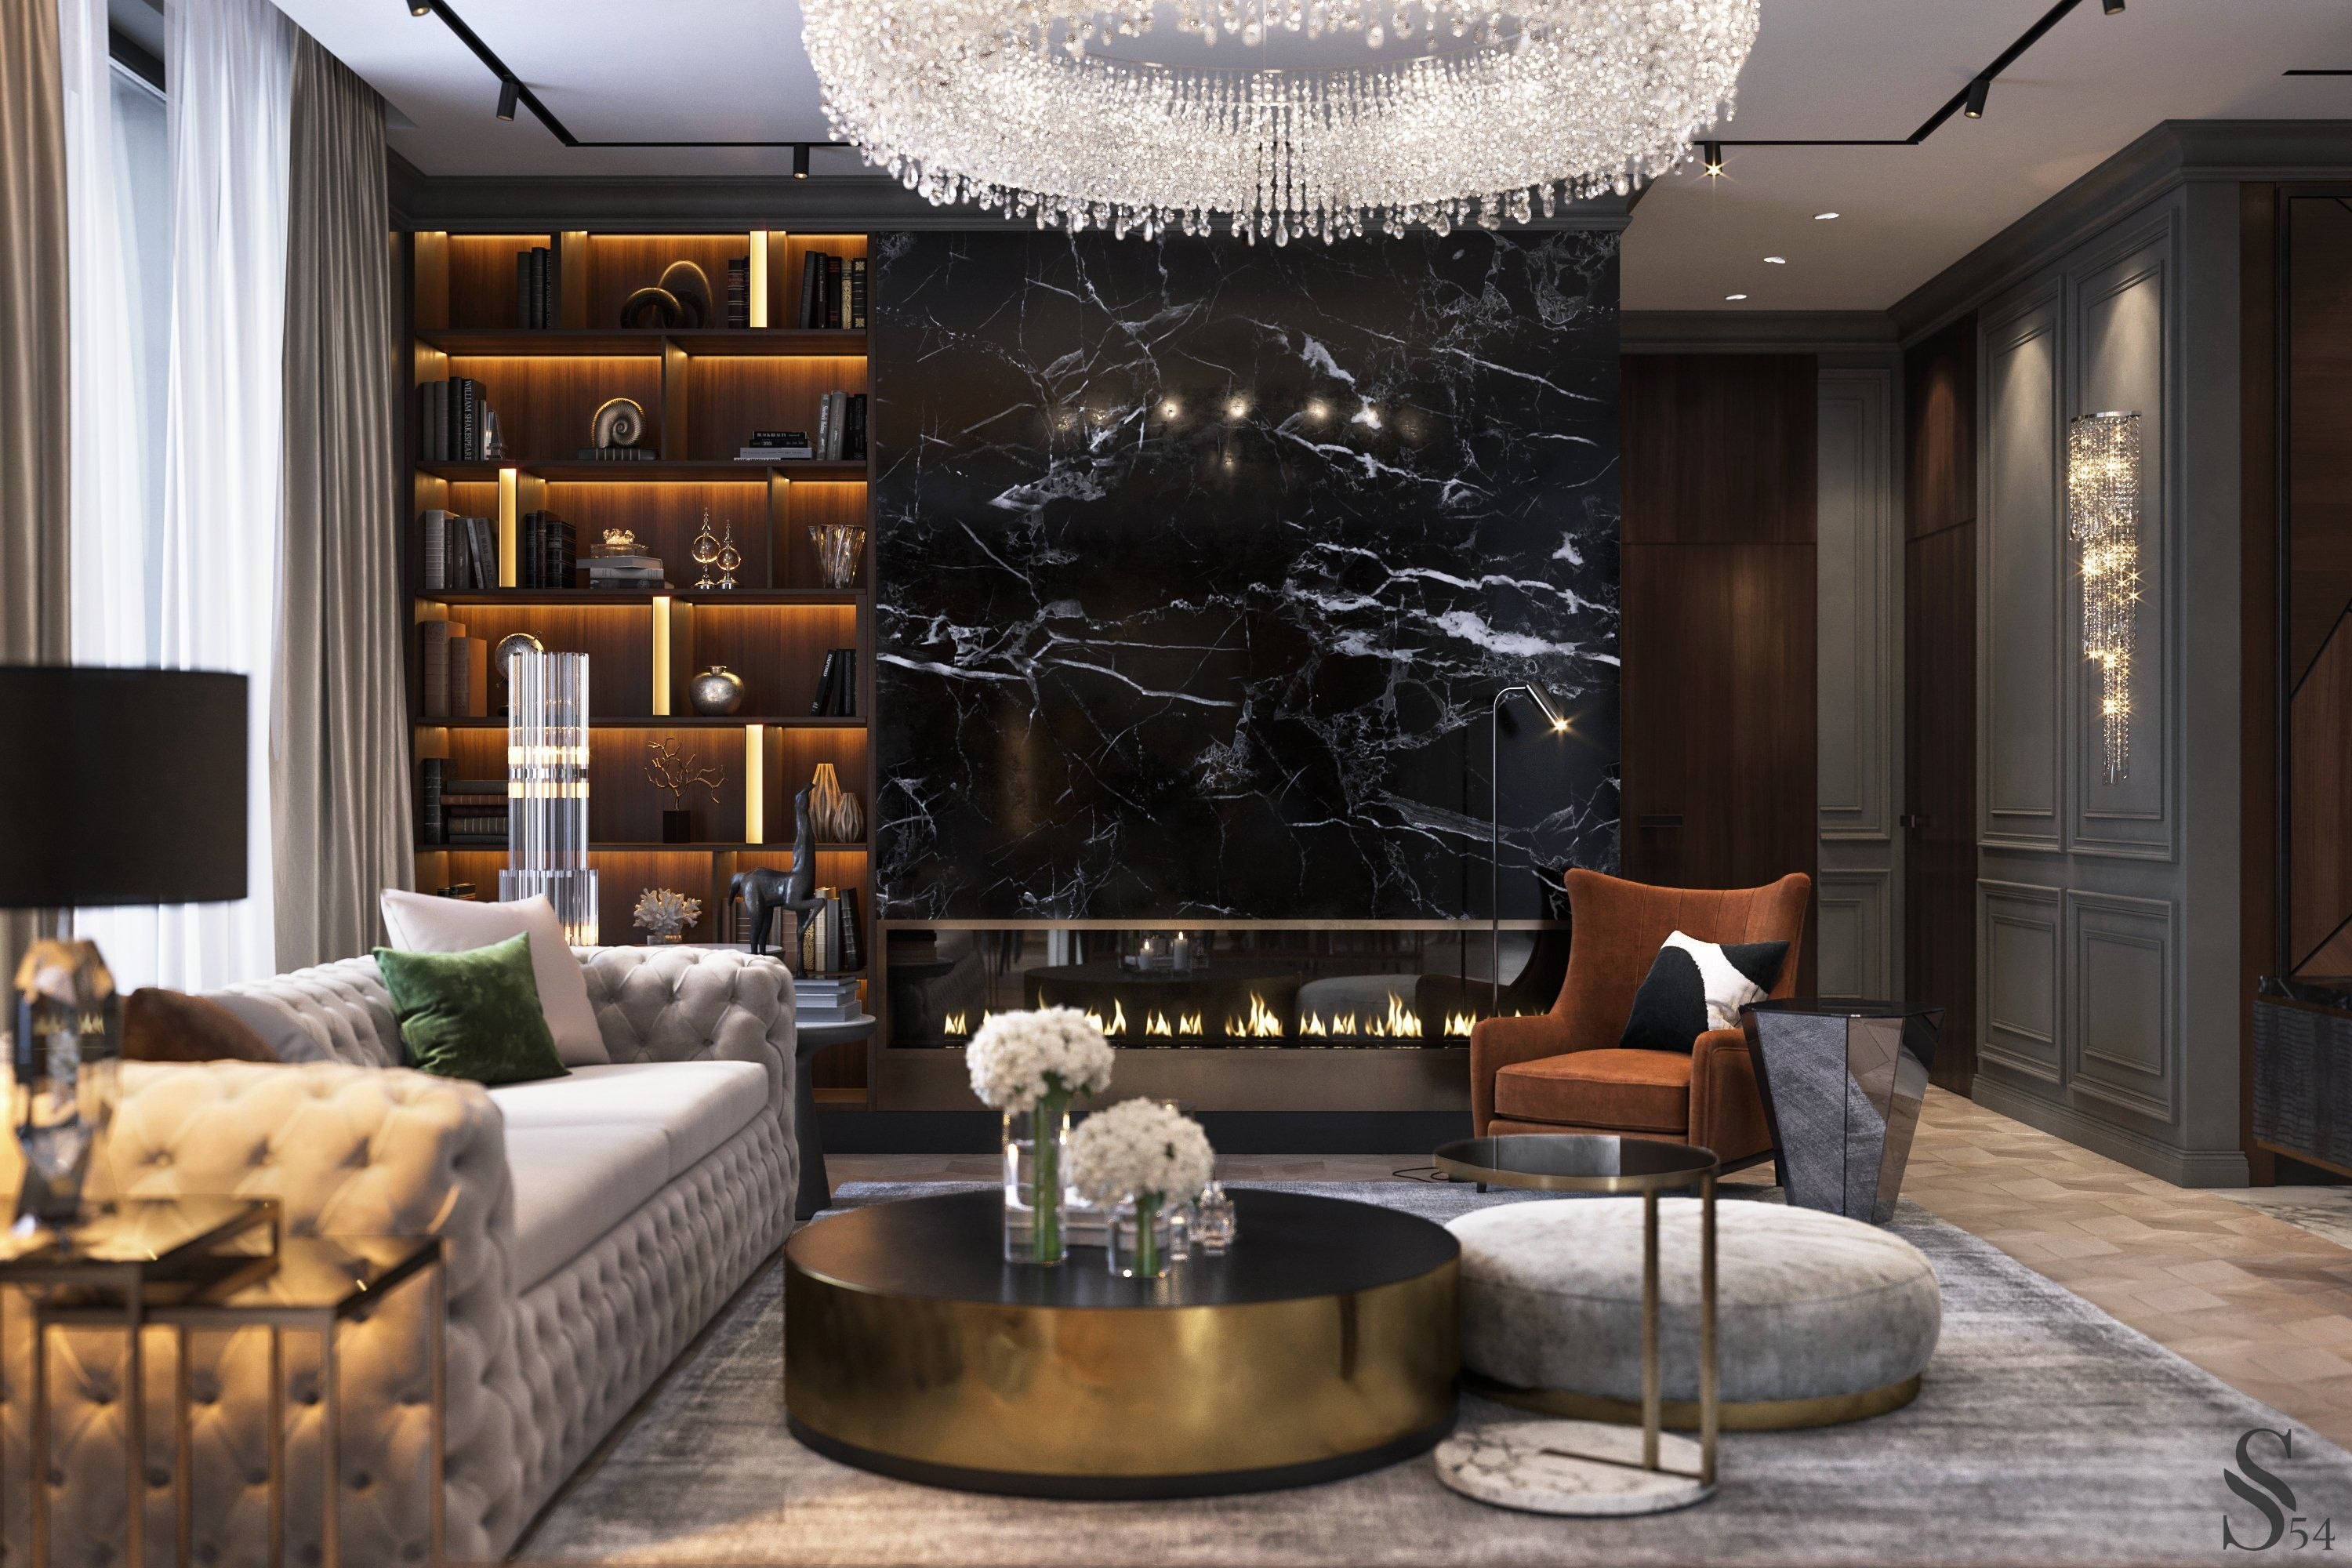 If You Are A Design Lover You Have To See This Fantastic Atmosphere To See More Click On The Image Decoaddict Interiordeta Desain Interior Interior Desain